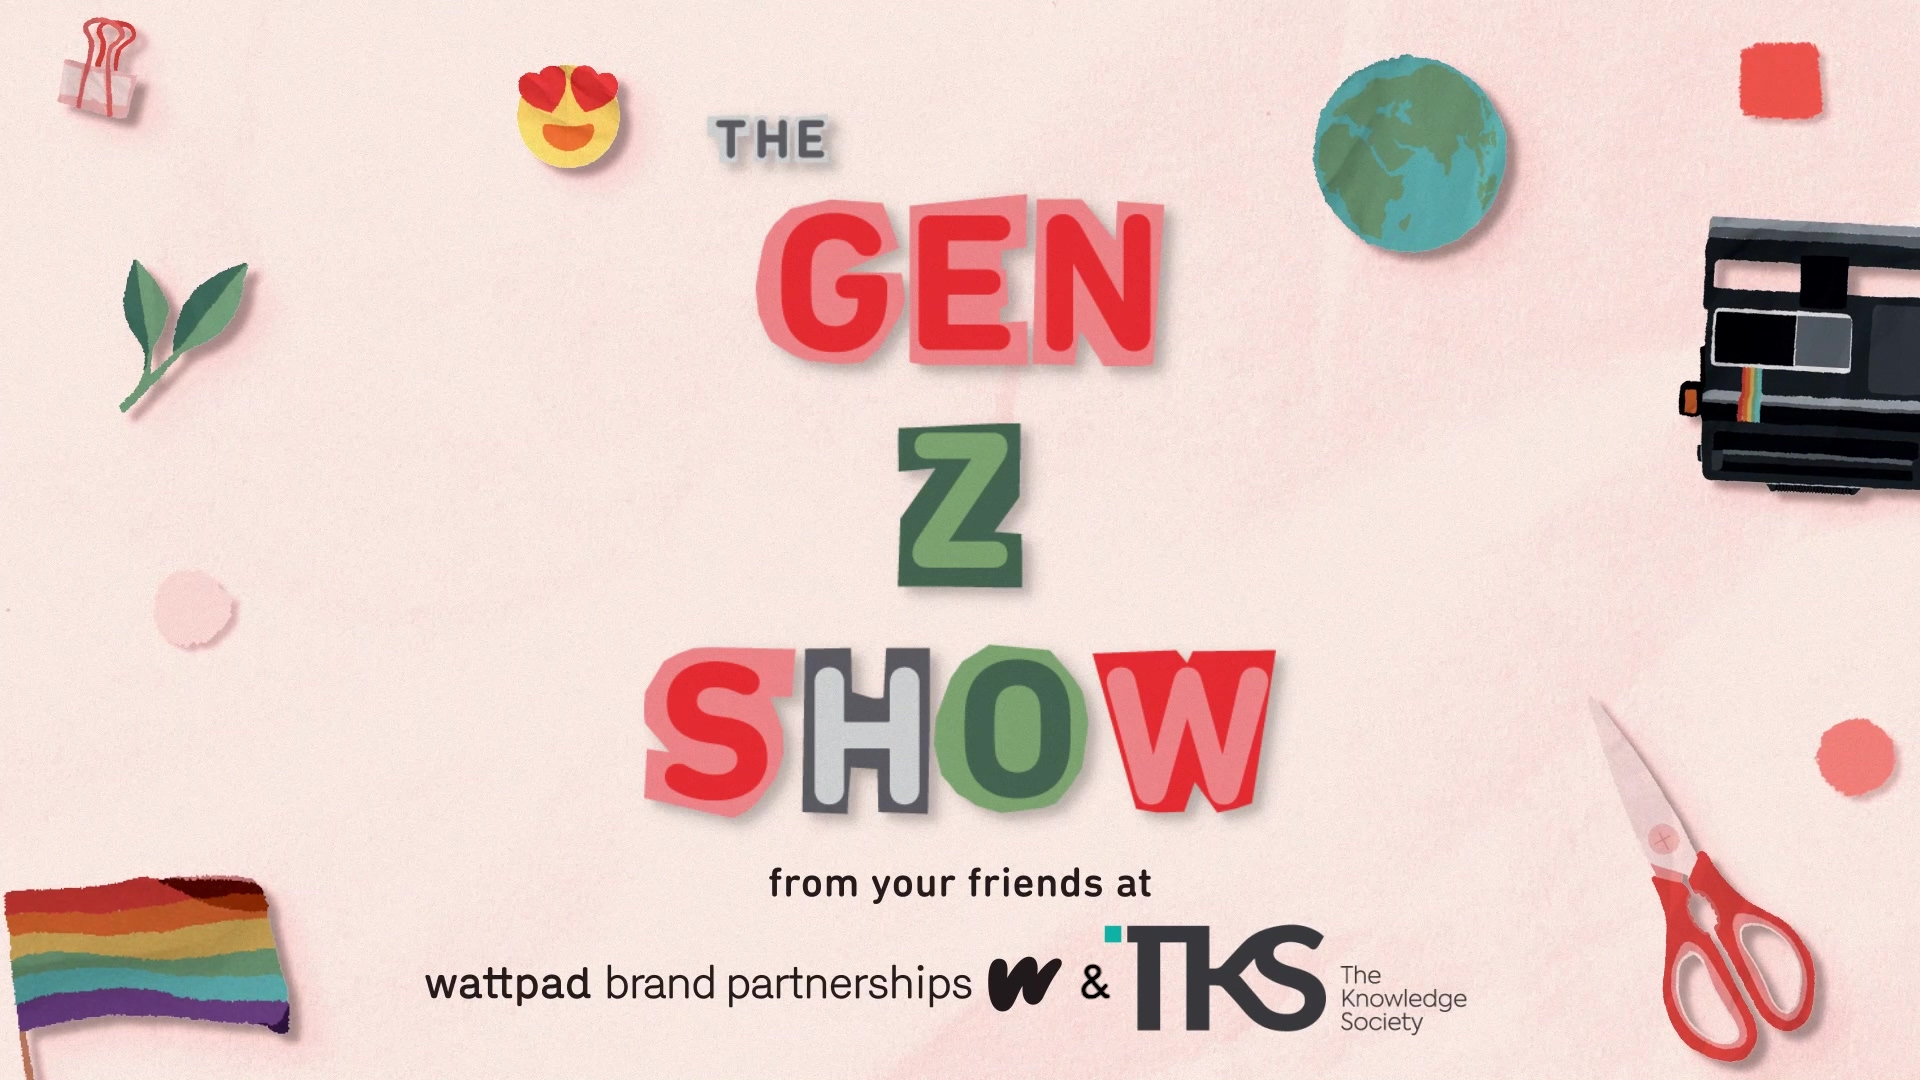 The Gen Z Show Reflections